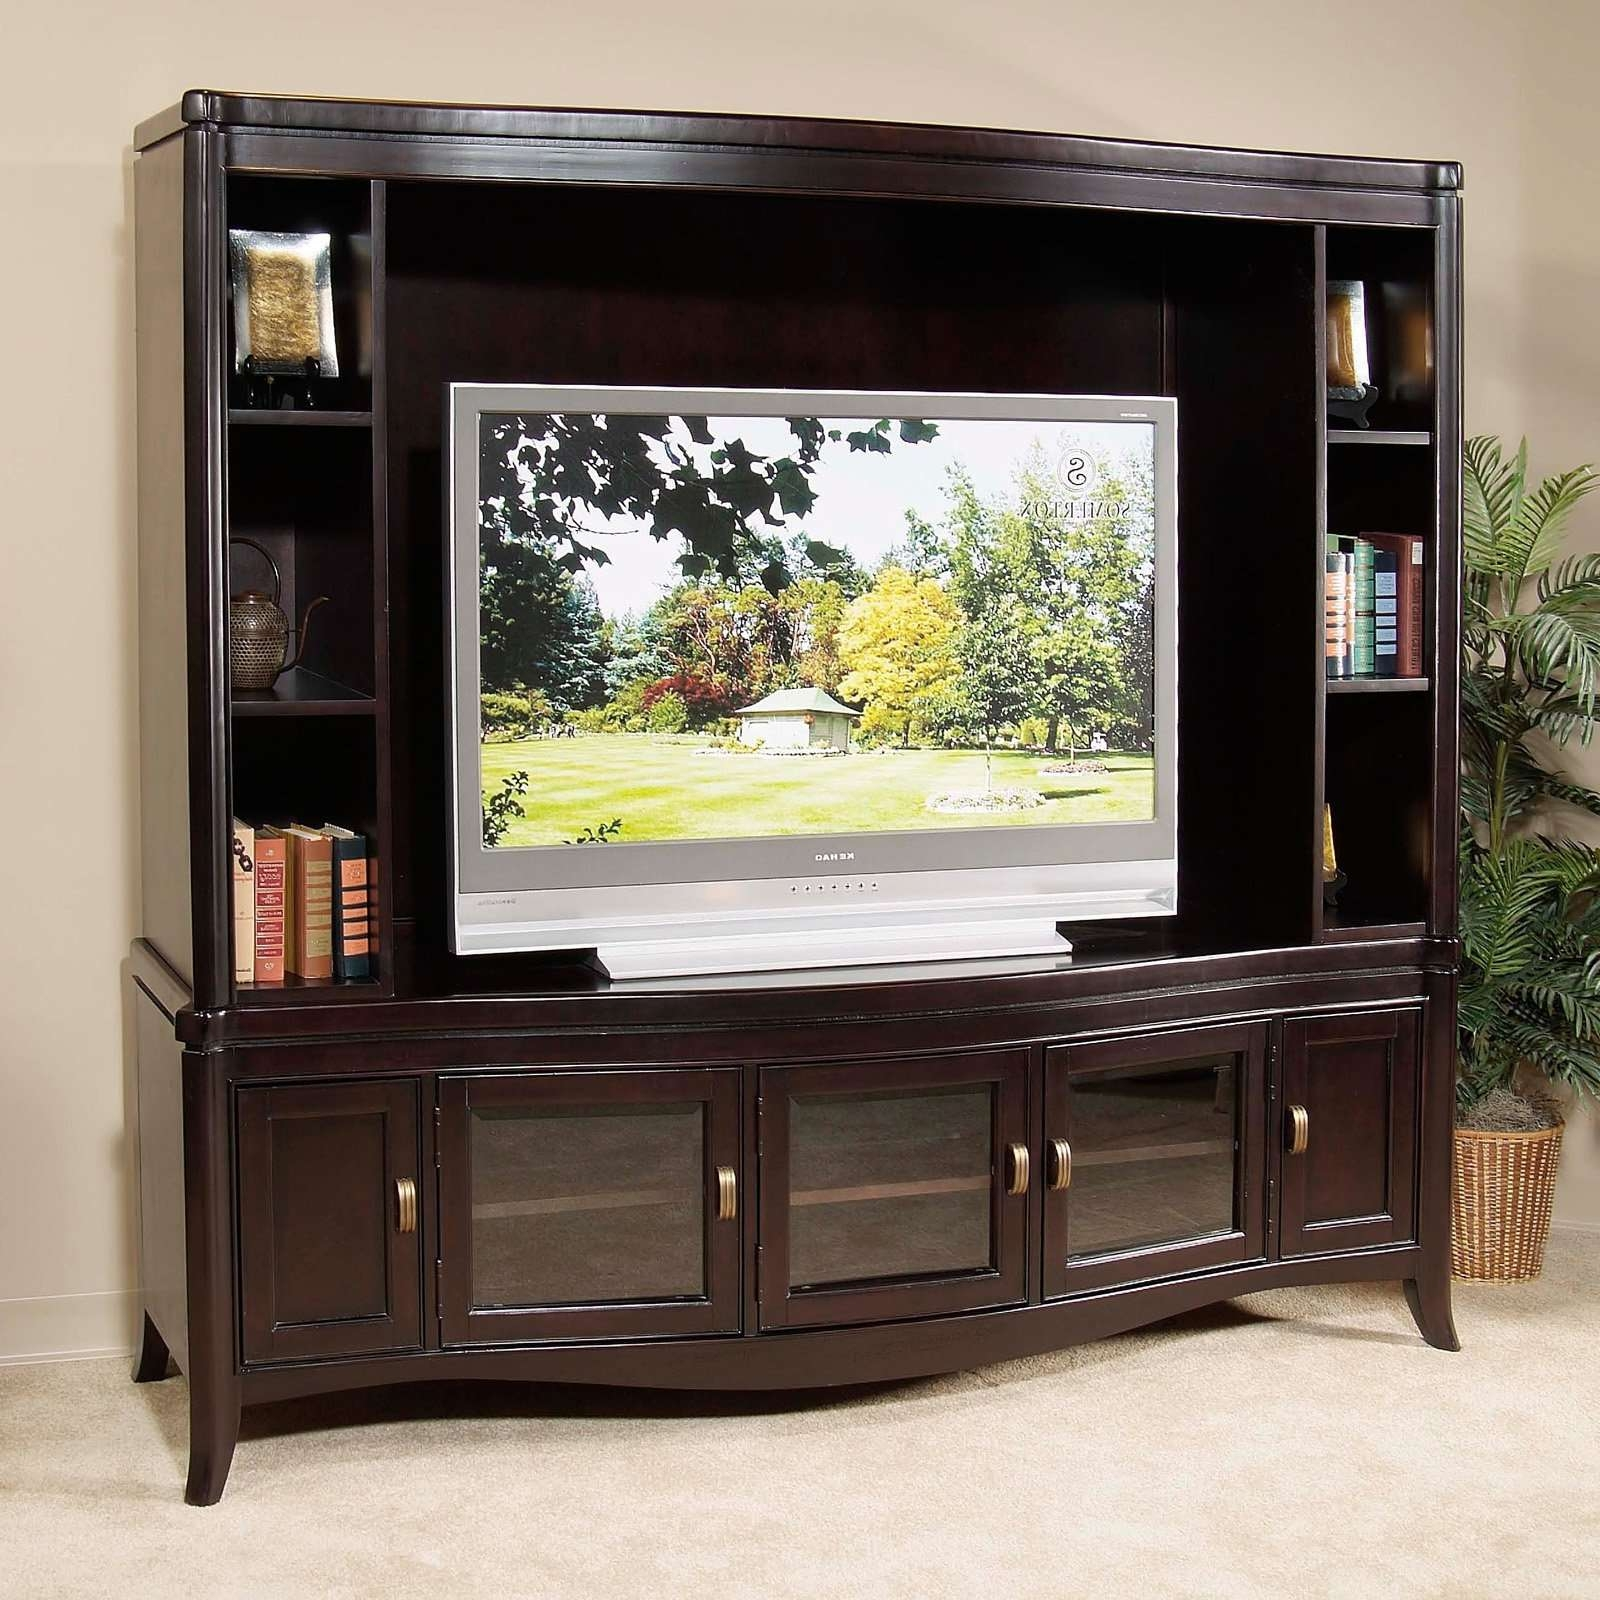 Tv : Intriguing Lockable Tv Stands Entertain Lockable Tv Stands Intended For Lockable Tv Stands (View 6 of 20)